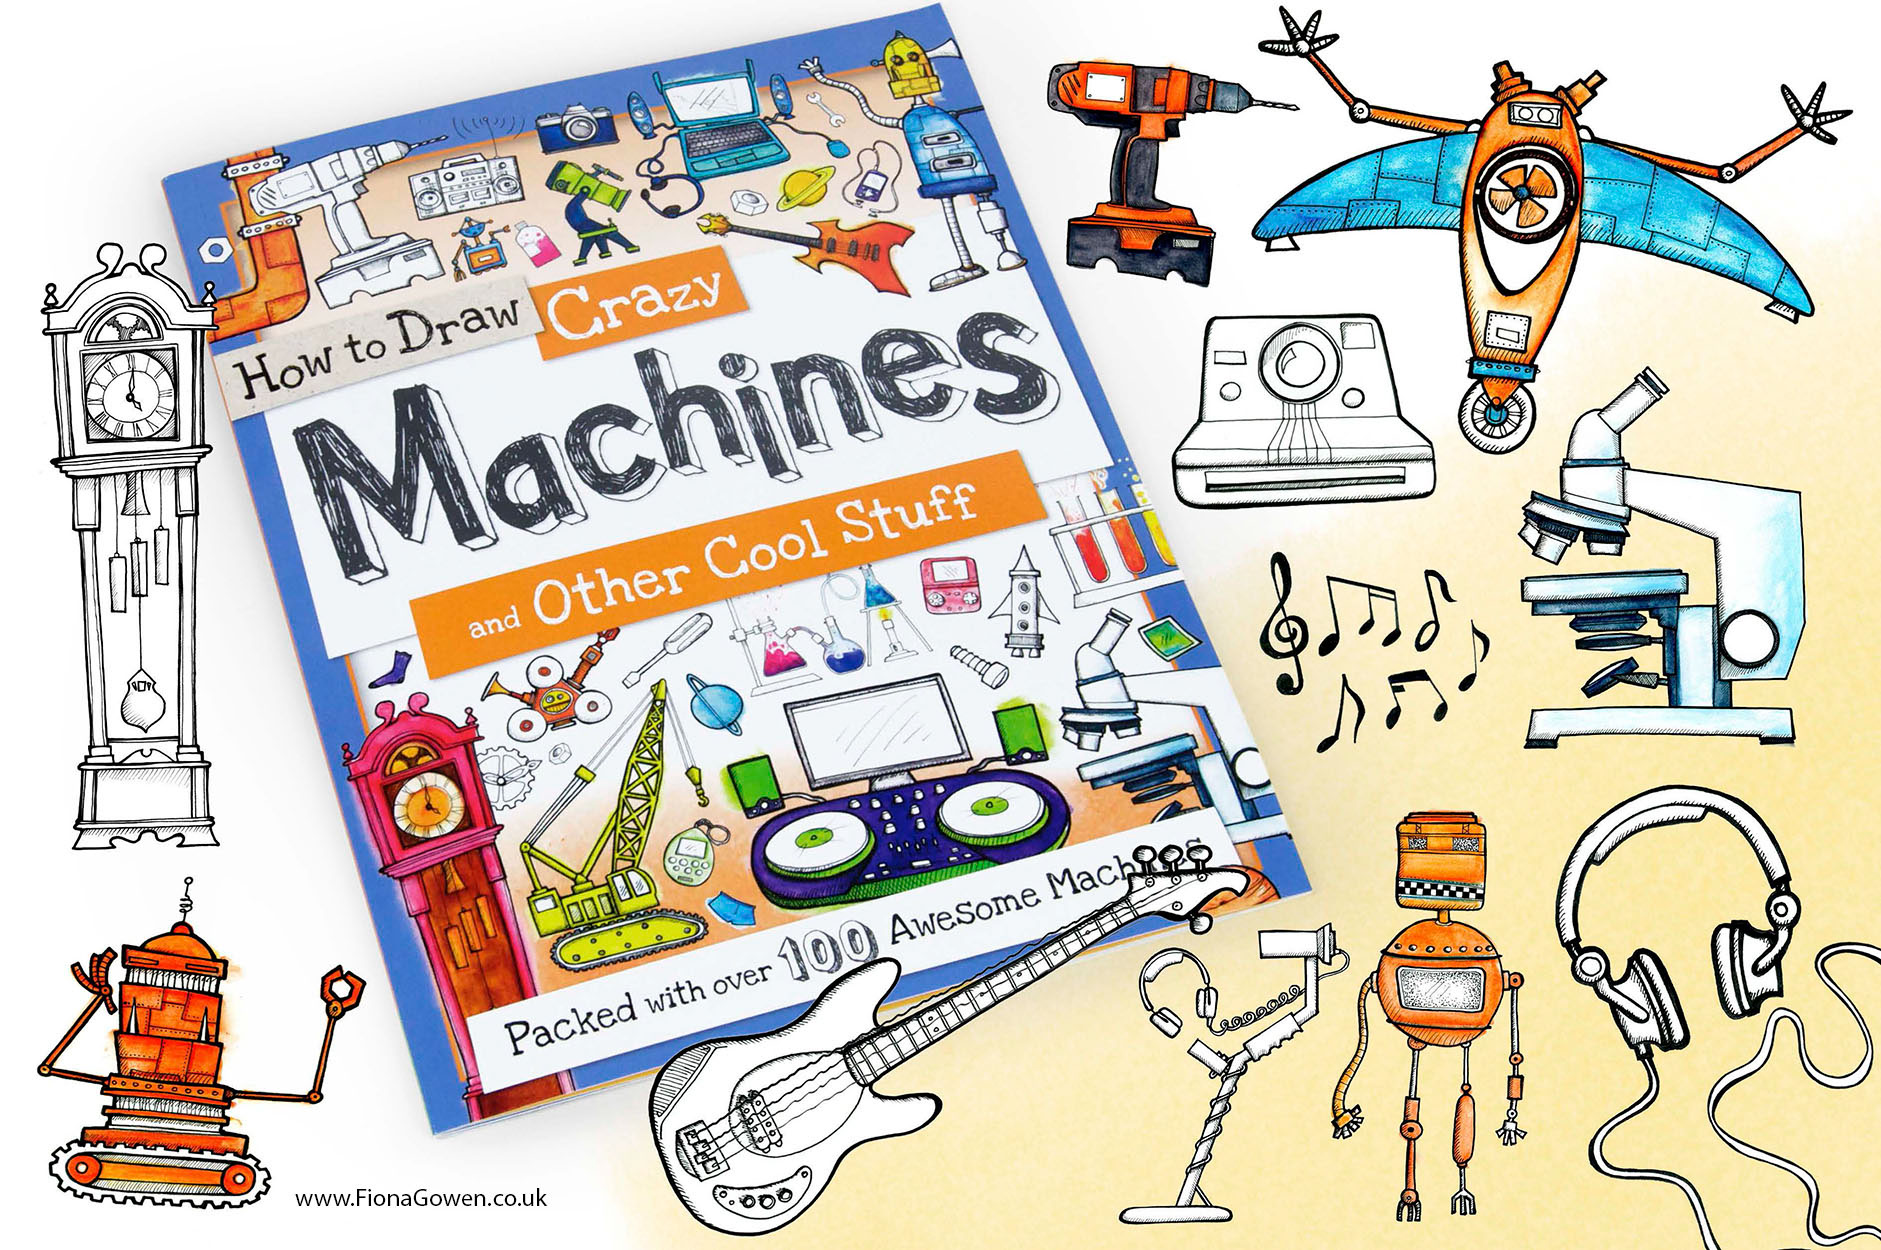 Childrens art book How to Draw Machines Published By Green Android and illustrated by Fiona Gowen. Illustrated robots, guitars, clocks, cameras, tools